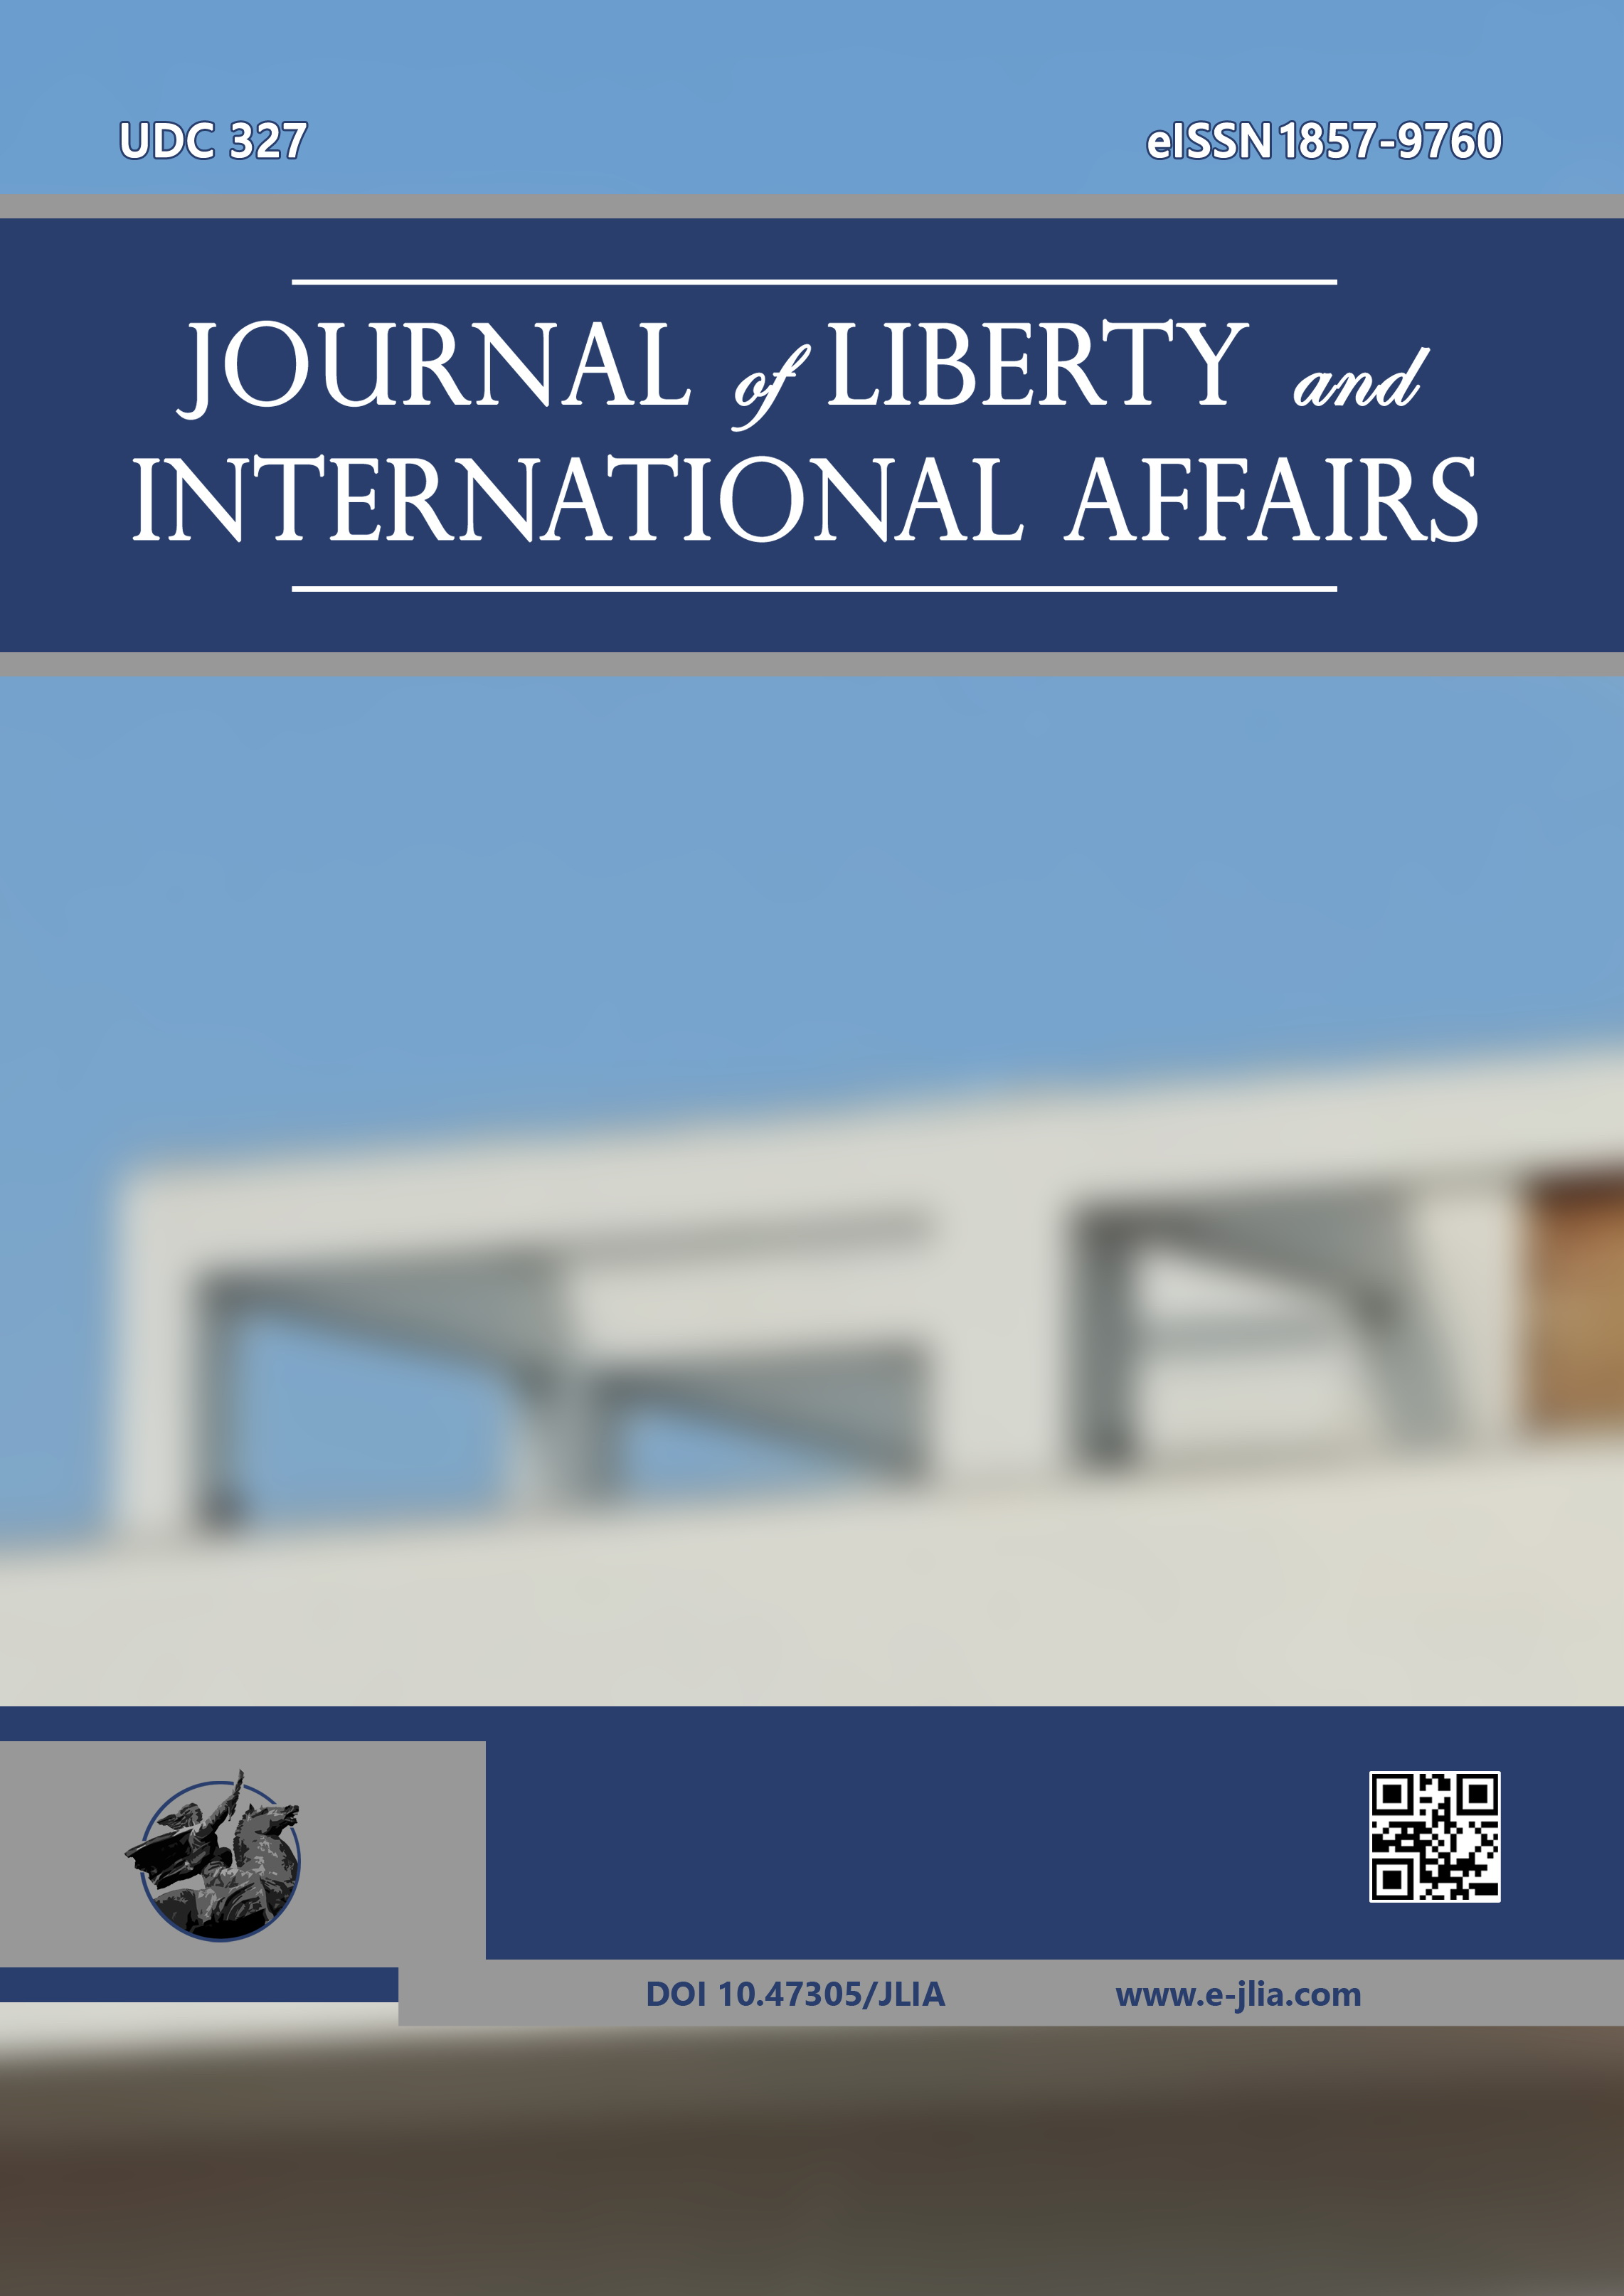 Vol. 7 No. 3 (2021): Journal of Liberty and International Affairs